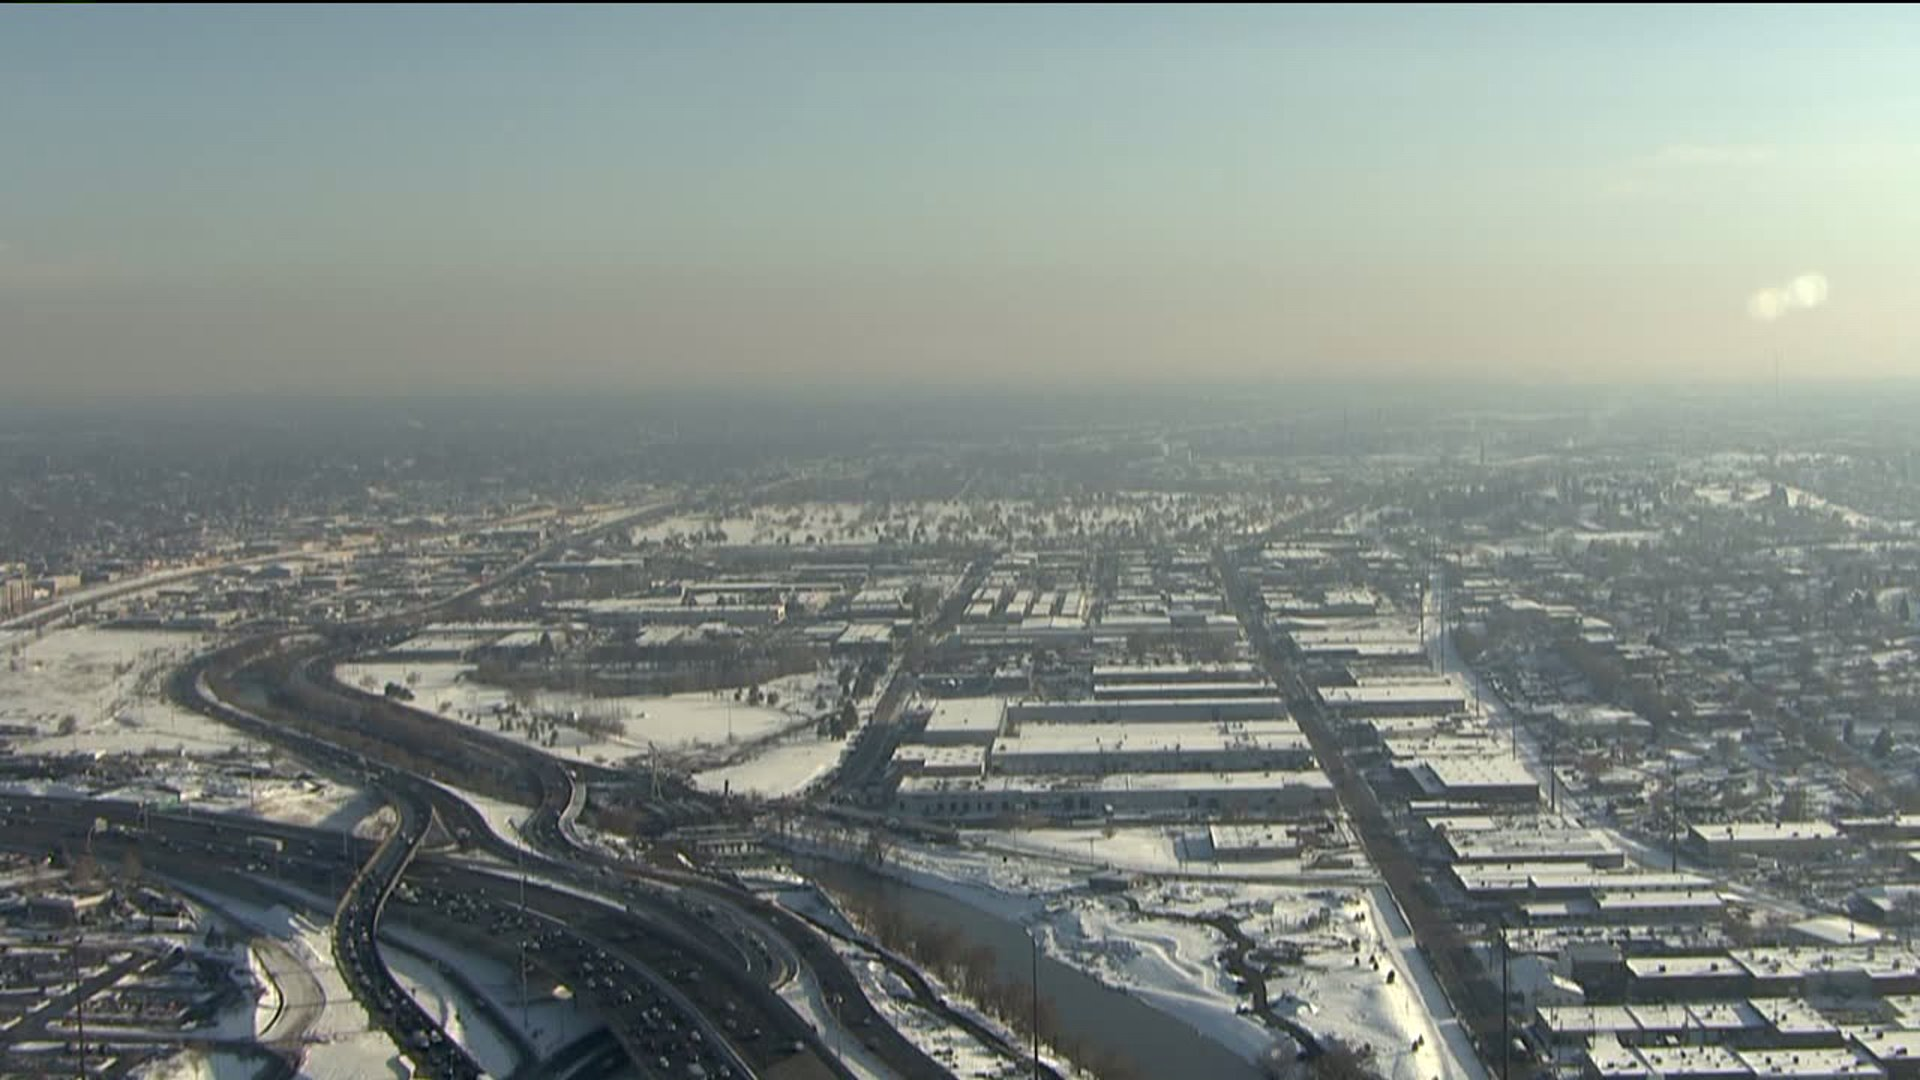 Denver from SkyFOX. Feb. 23, 2015